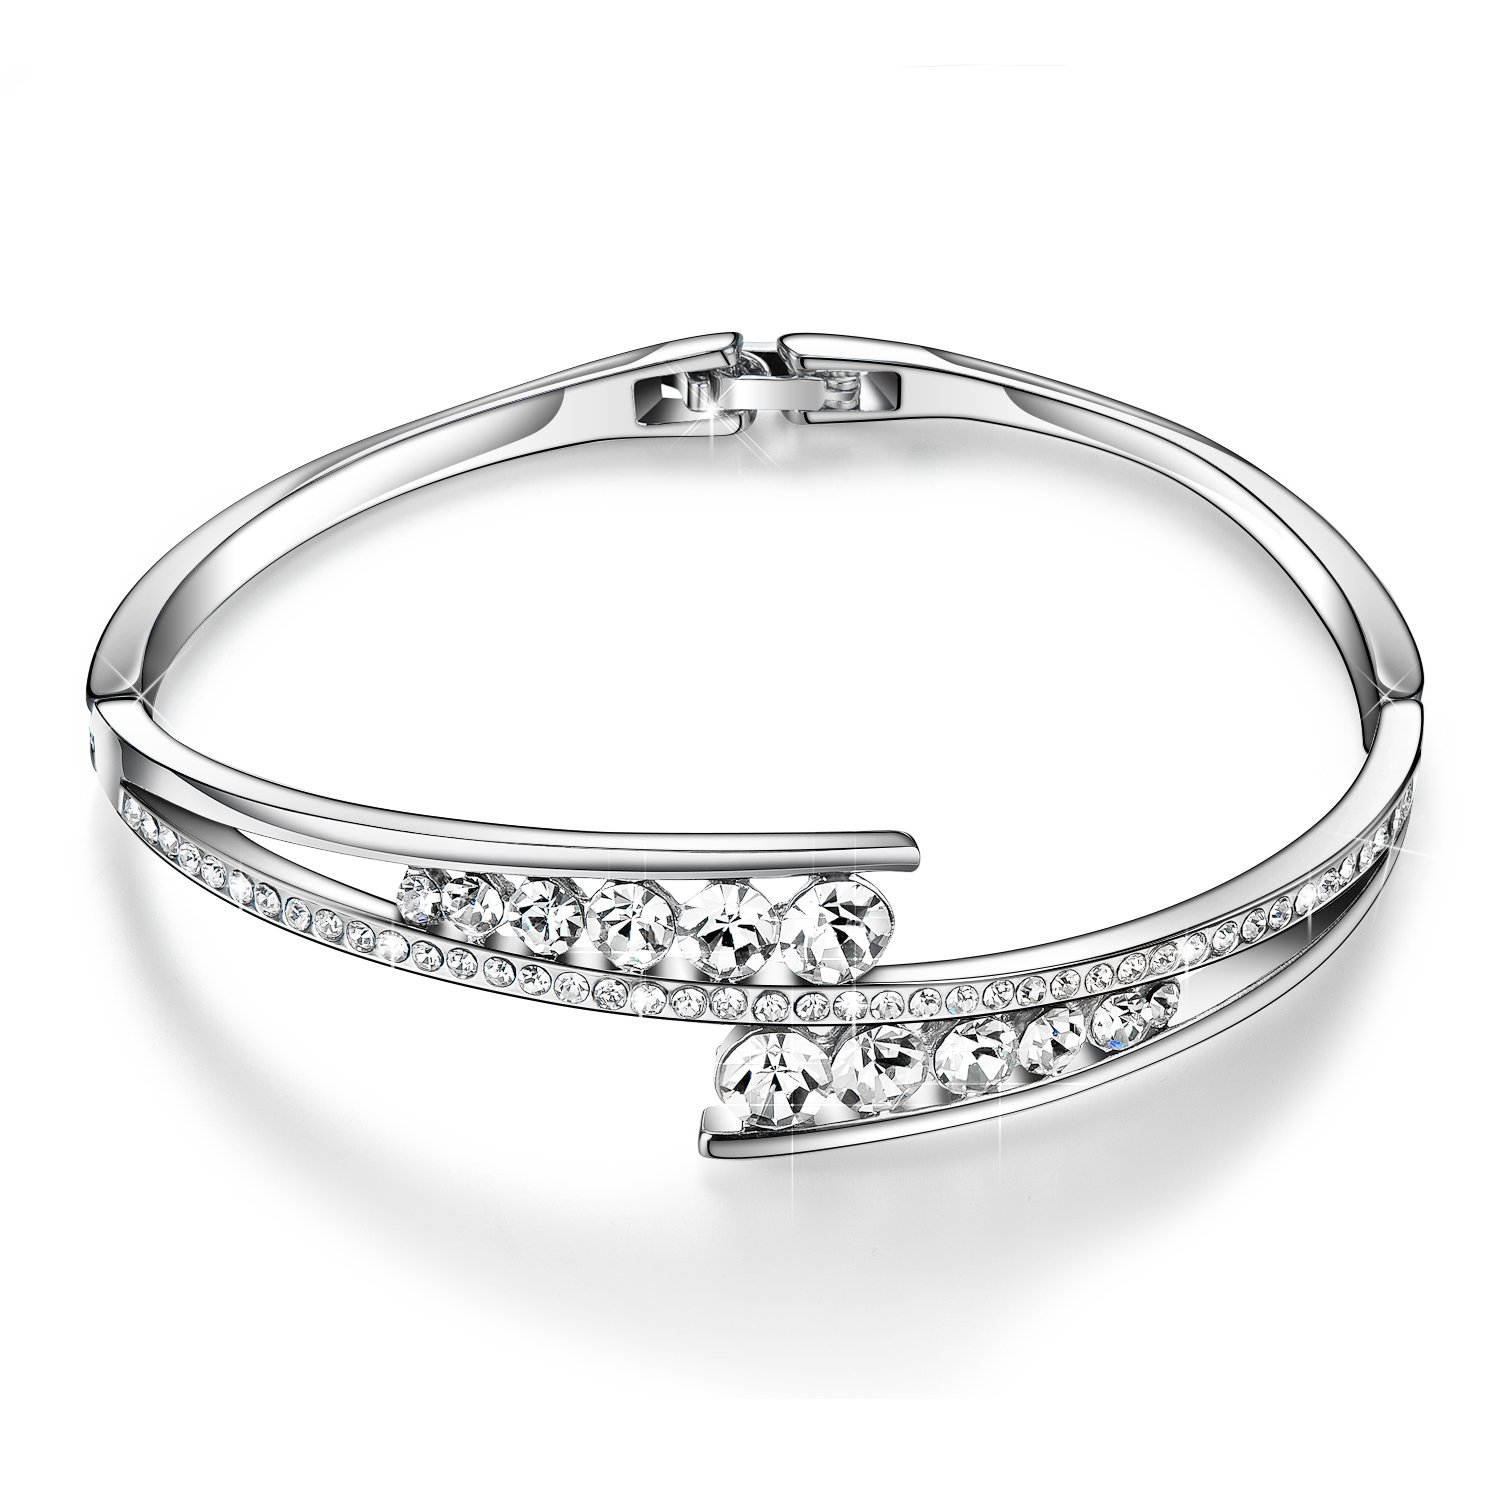 Menton Ezil ''Love Encounter Women Silver Bracelet Swarovski Bangle Jewelry for Wedding